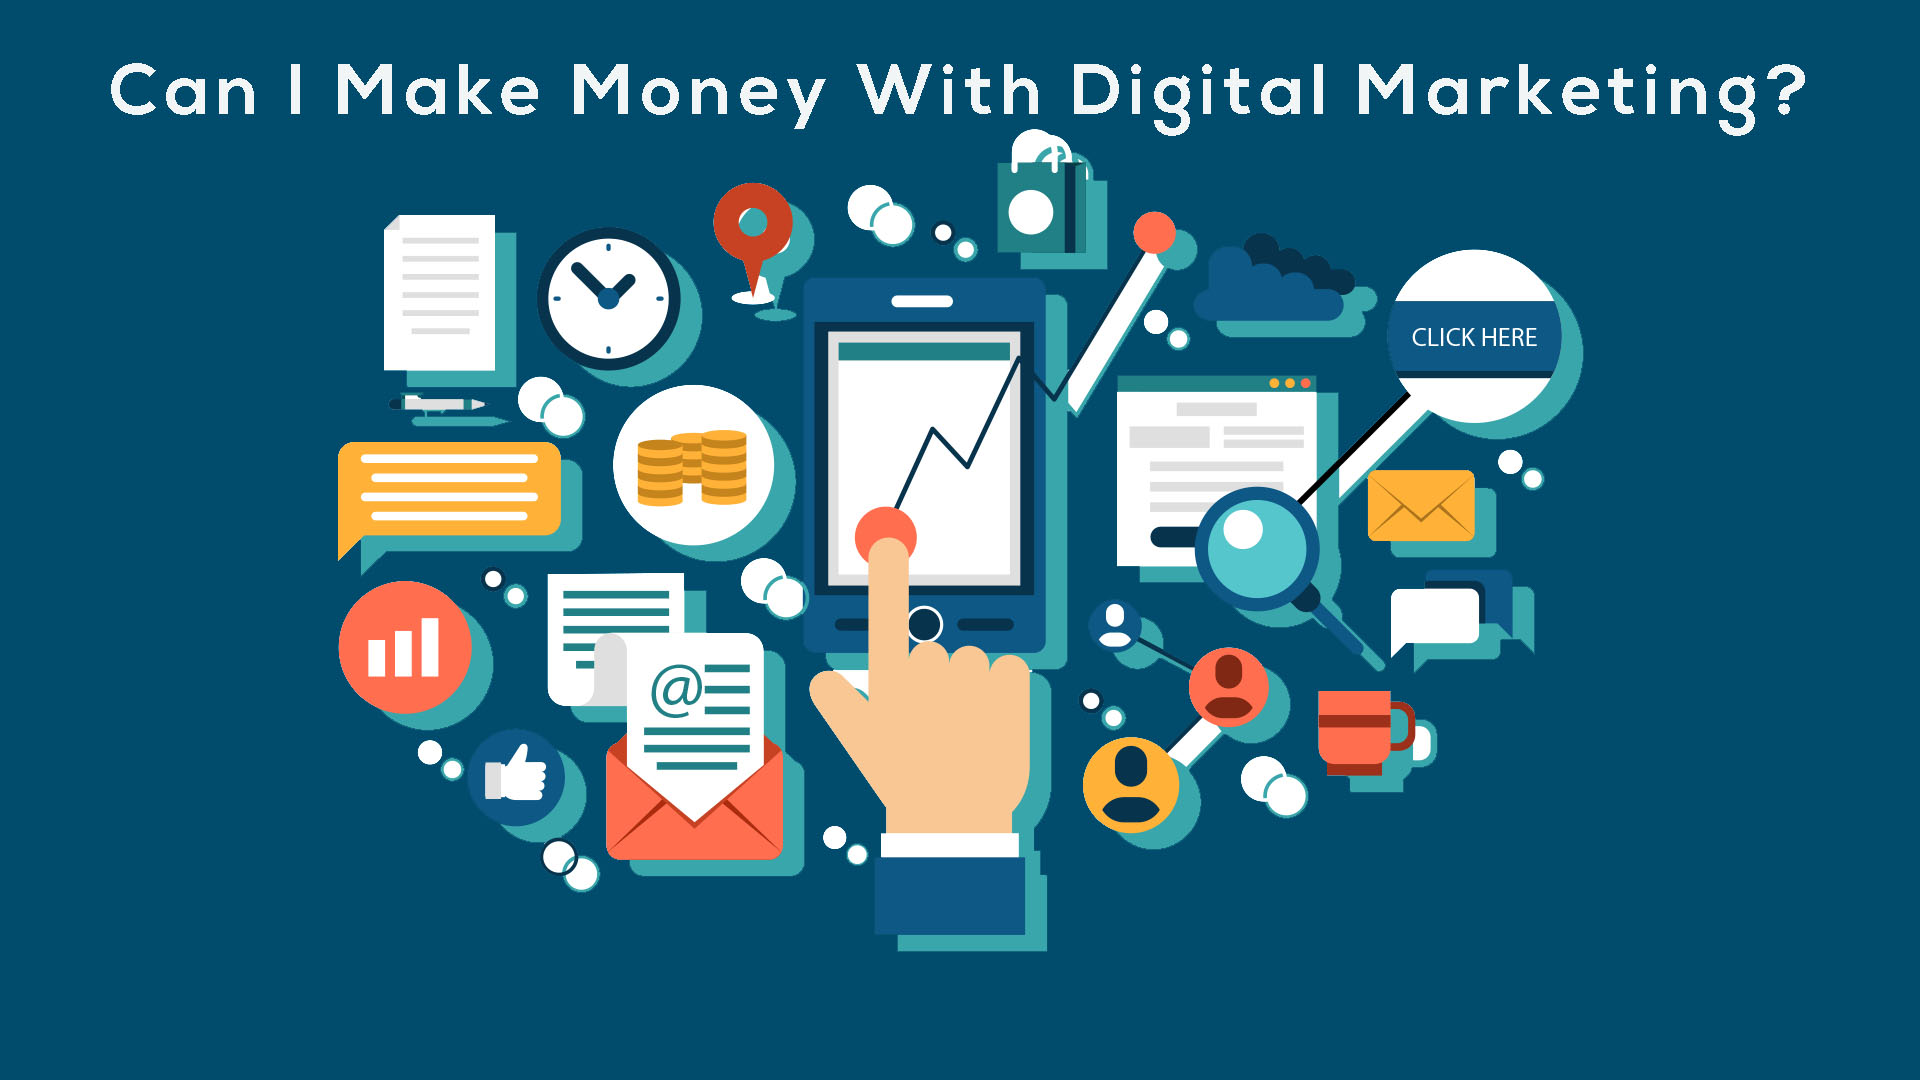 Can I Make Money With Digital Marketing?